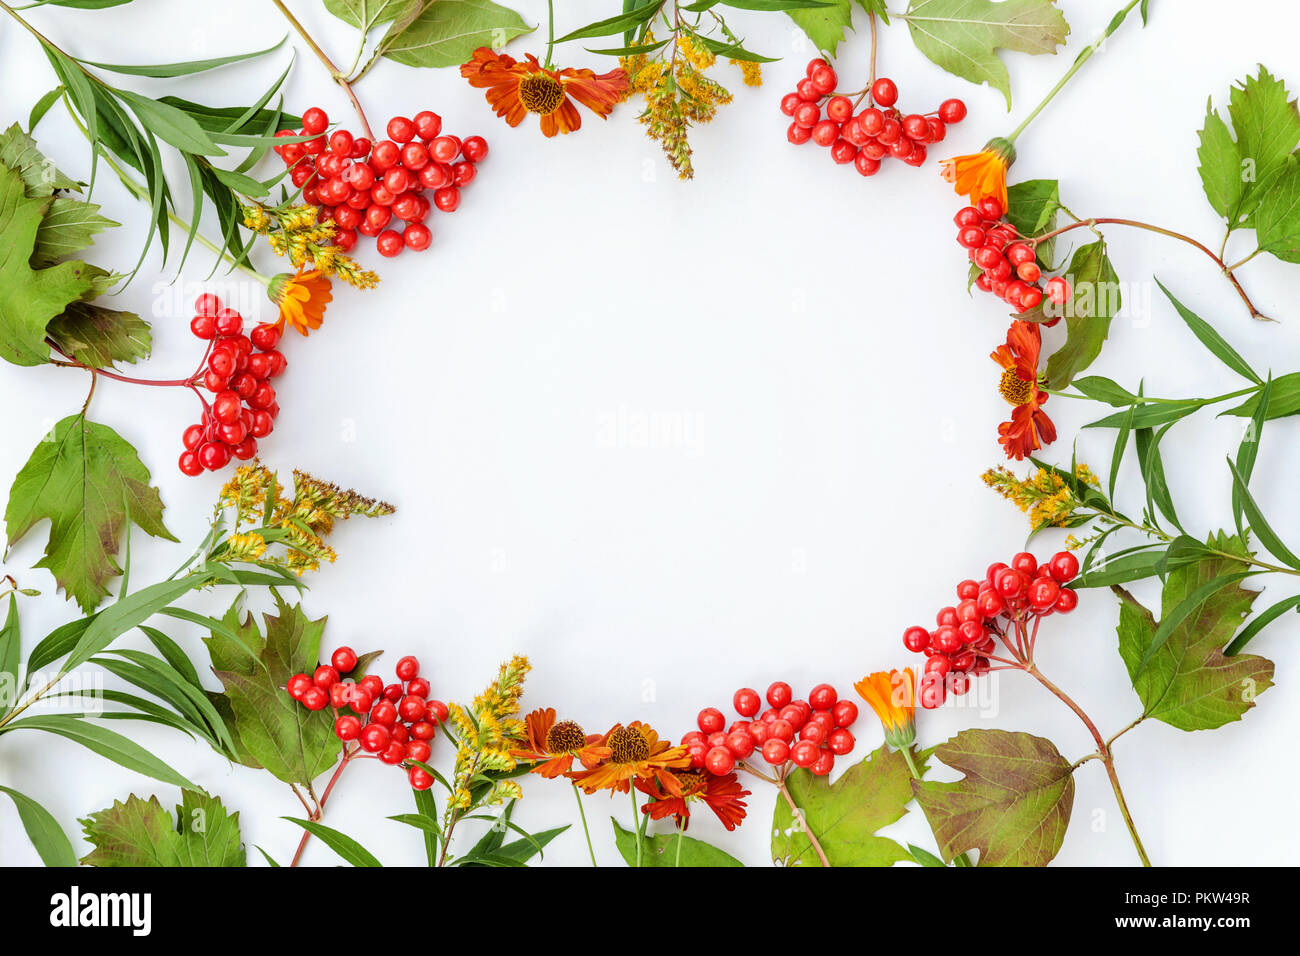 Autumn Floral Composition Frame Made Of Viburnum Berries